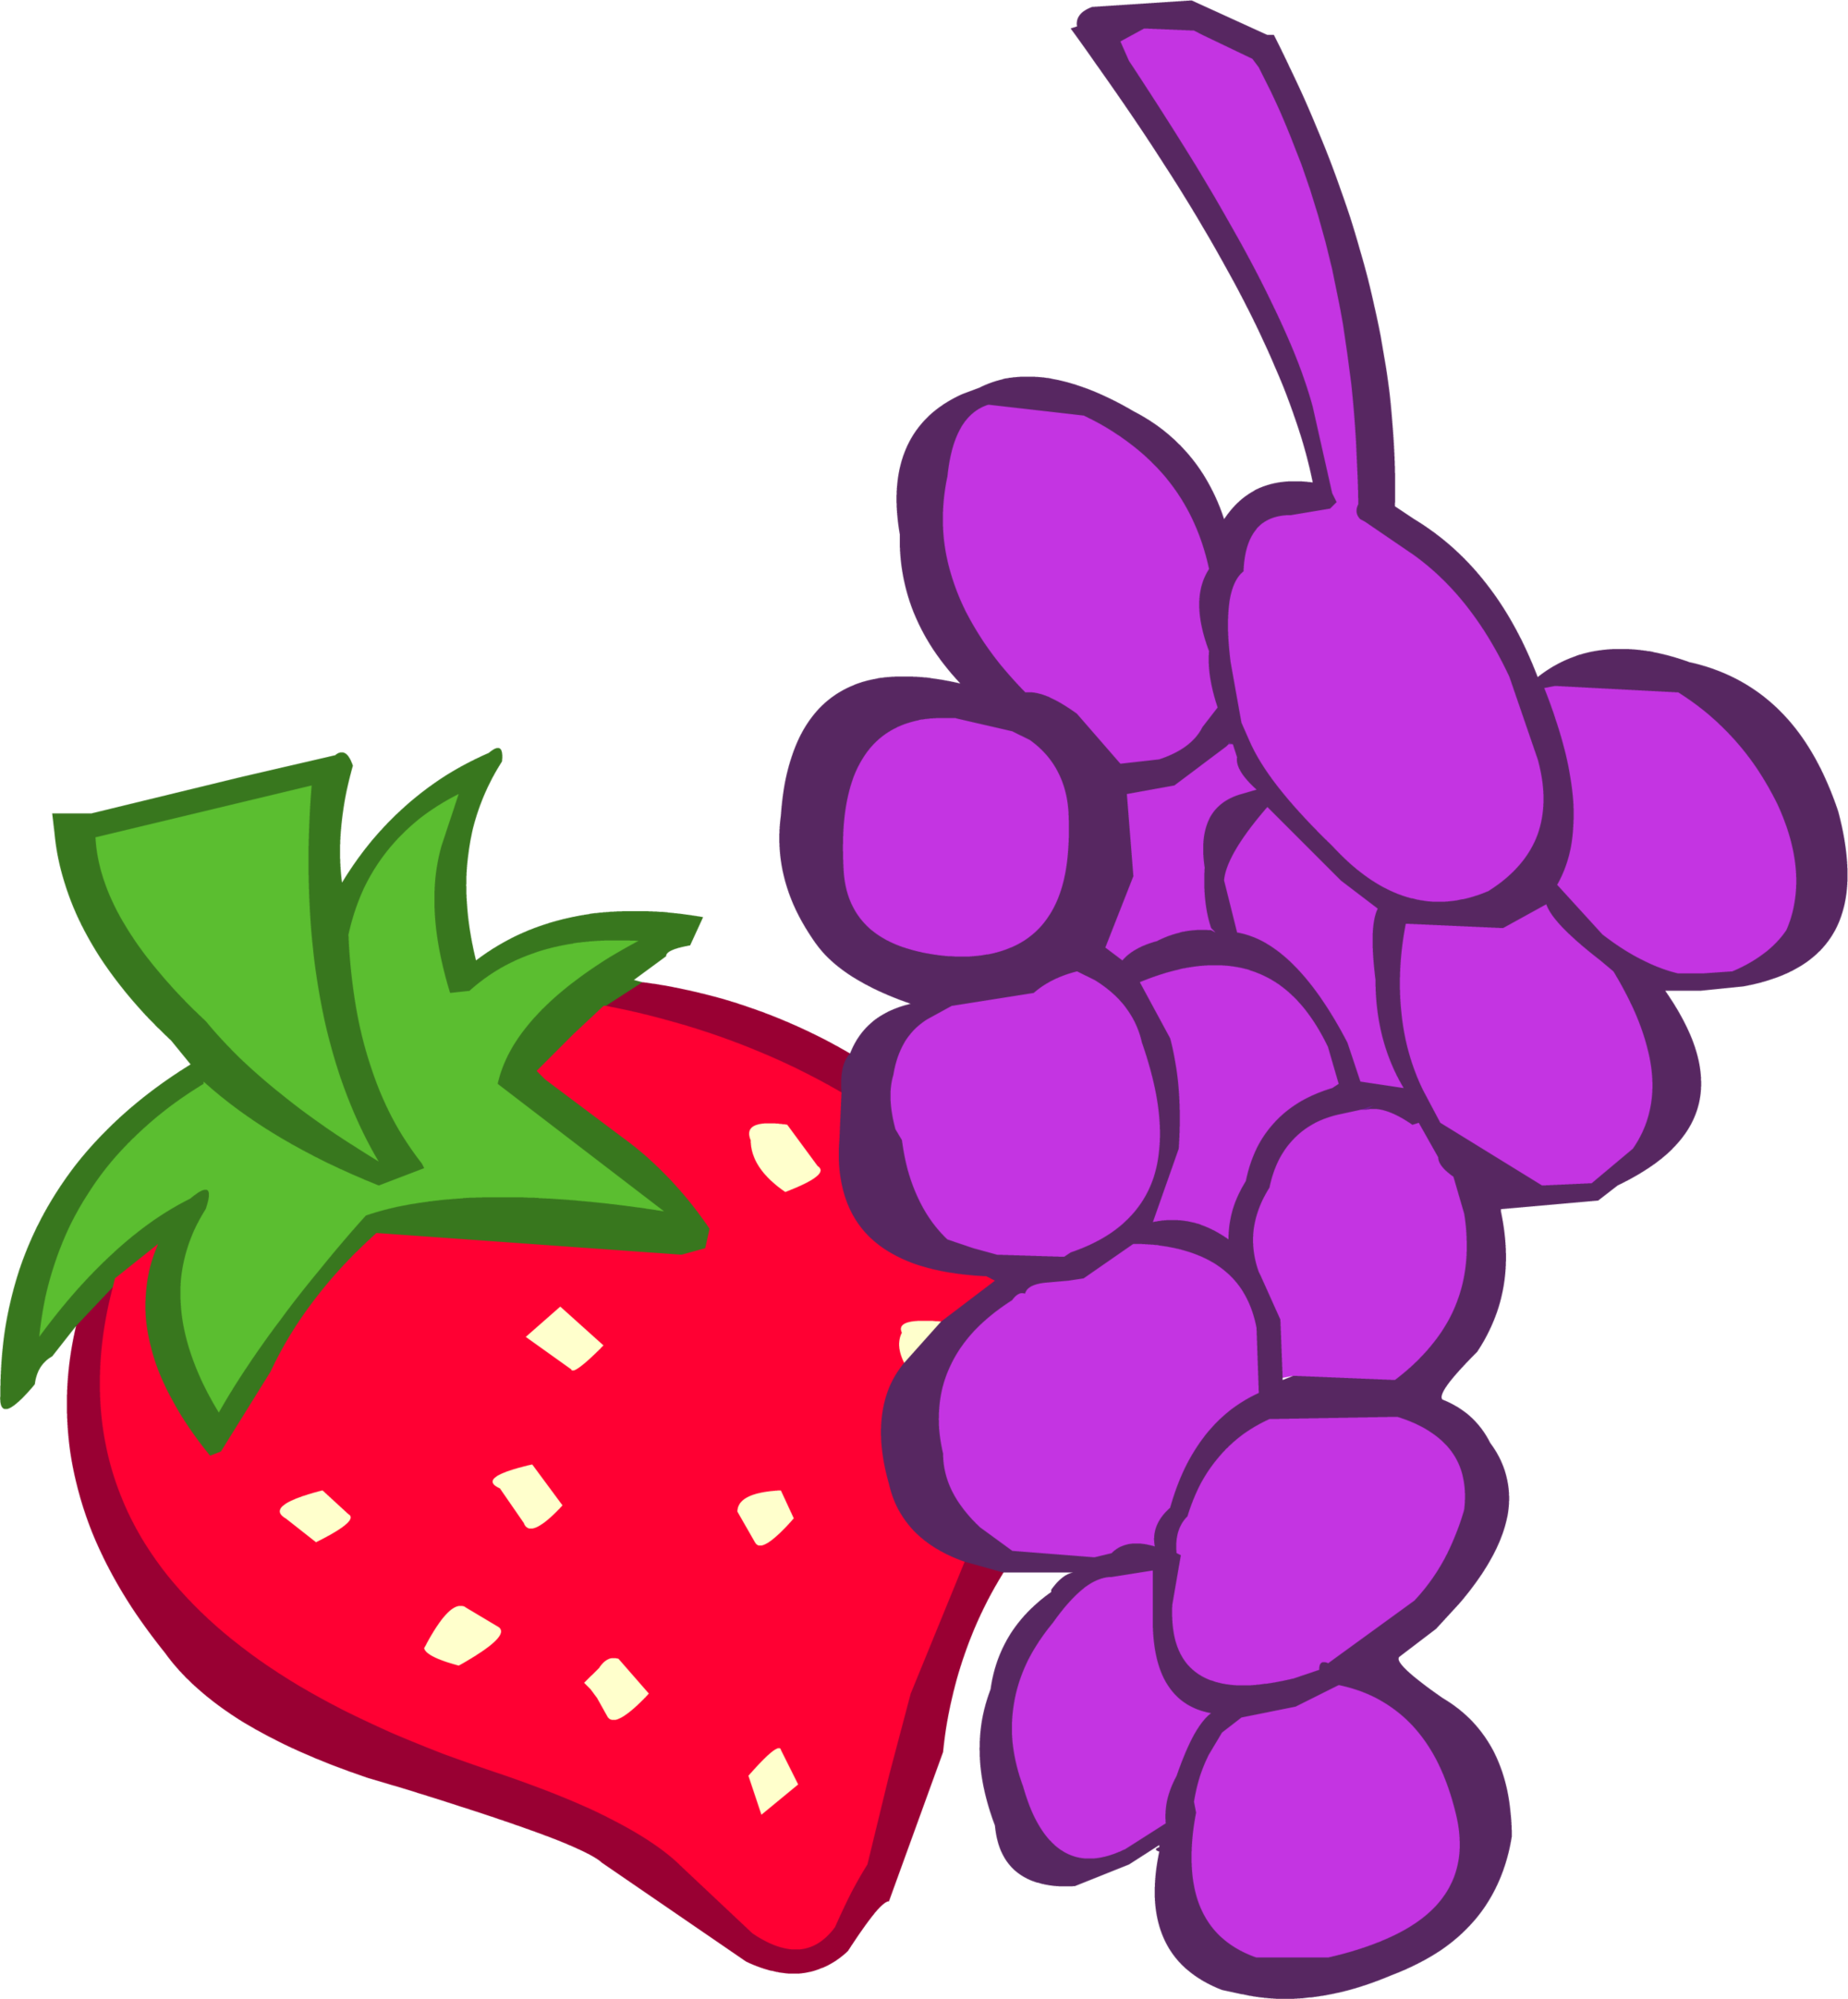 vector free download Berry clipart bittersweet. Berryshine my little pony.